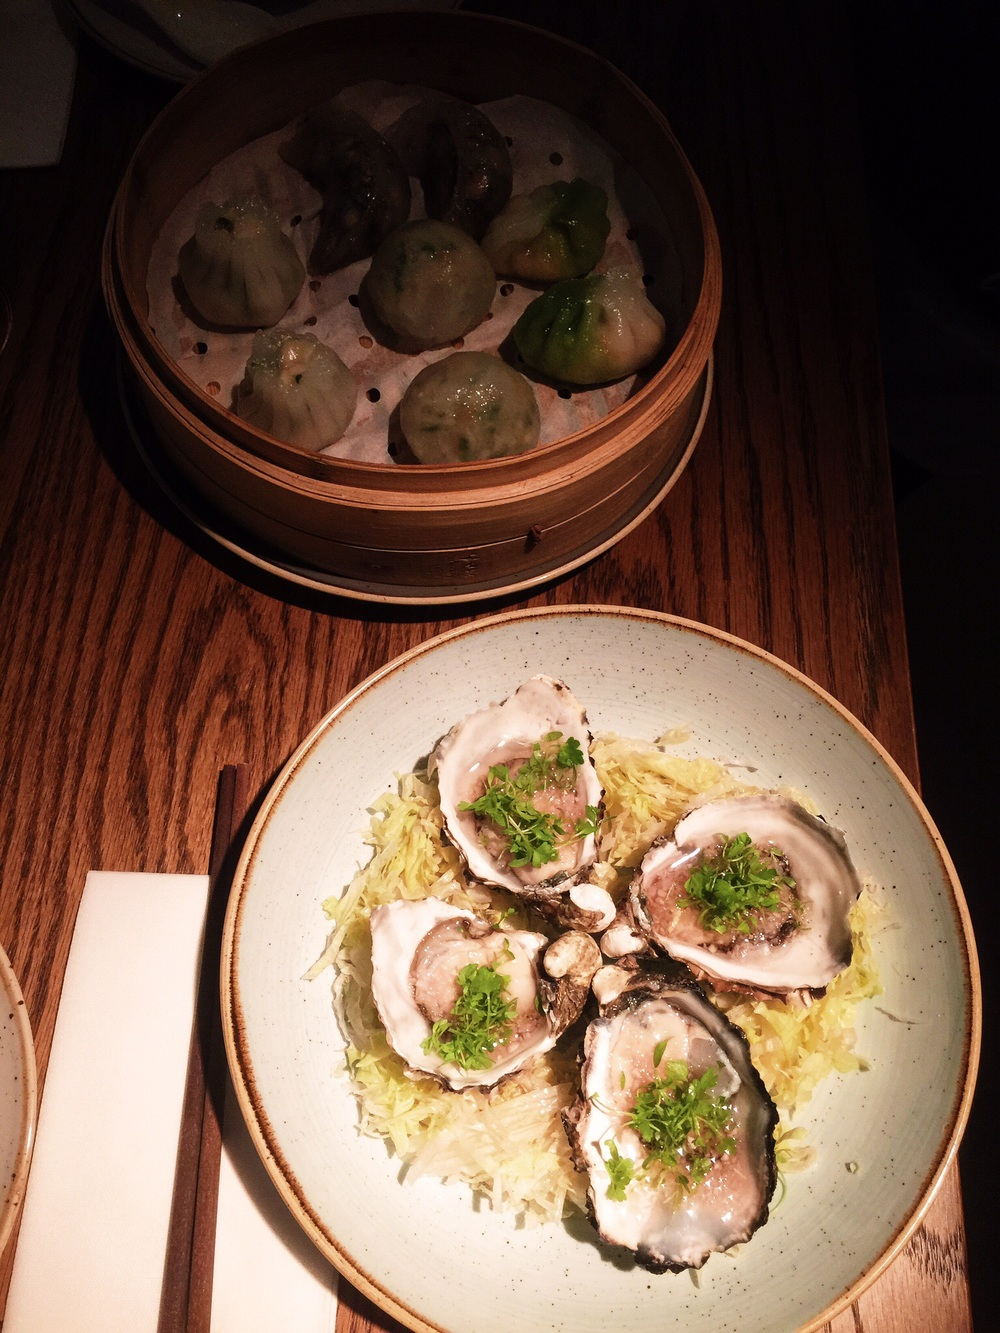 Oysters with eschallots, celery cress and rice wine vinegar